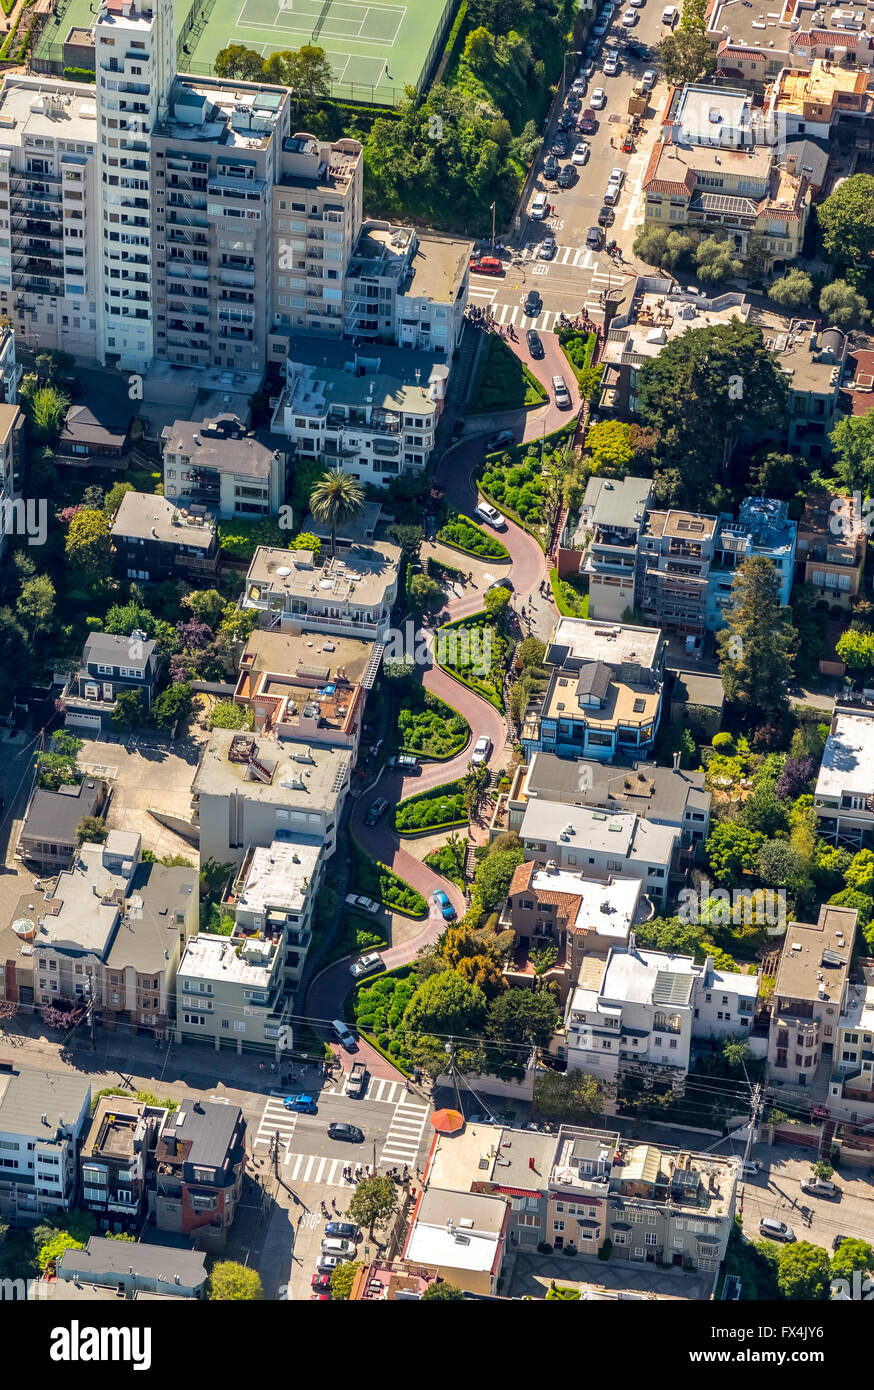 Aerial view, Lombard Street, winding road, curve road, streets of San Francisco, tourist attractions, San Francisco, - Stock Image